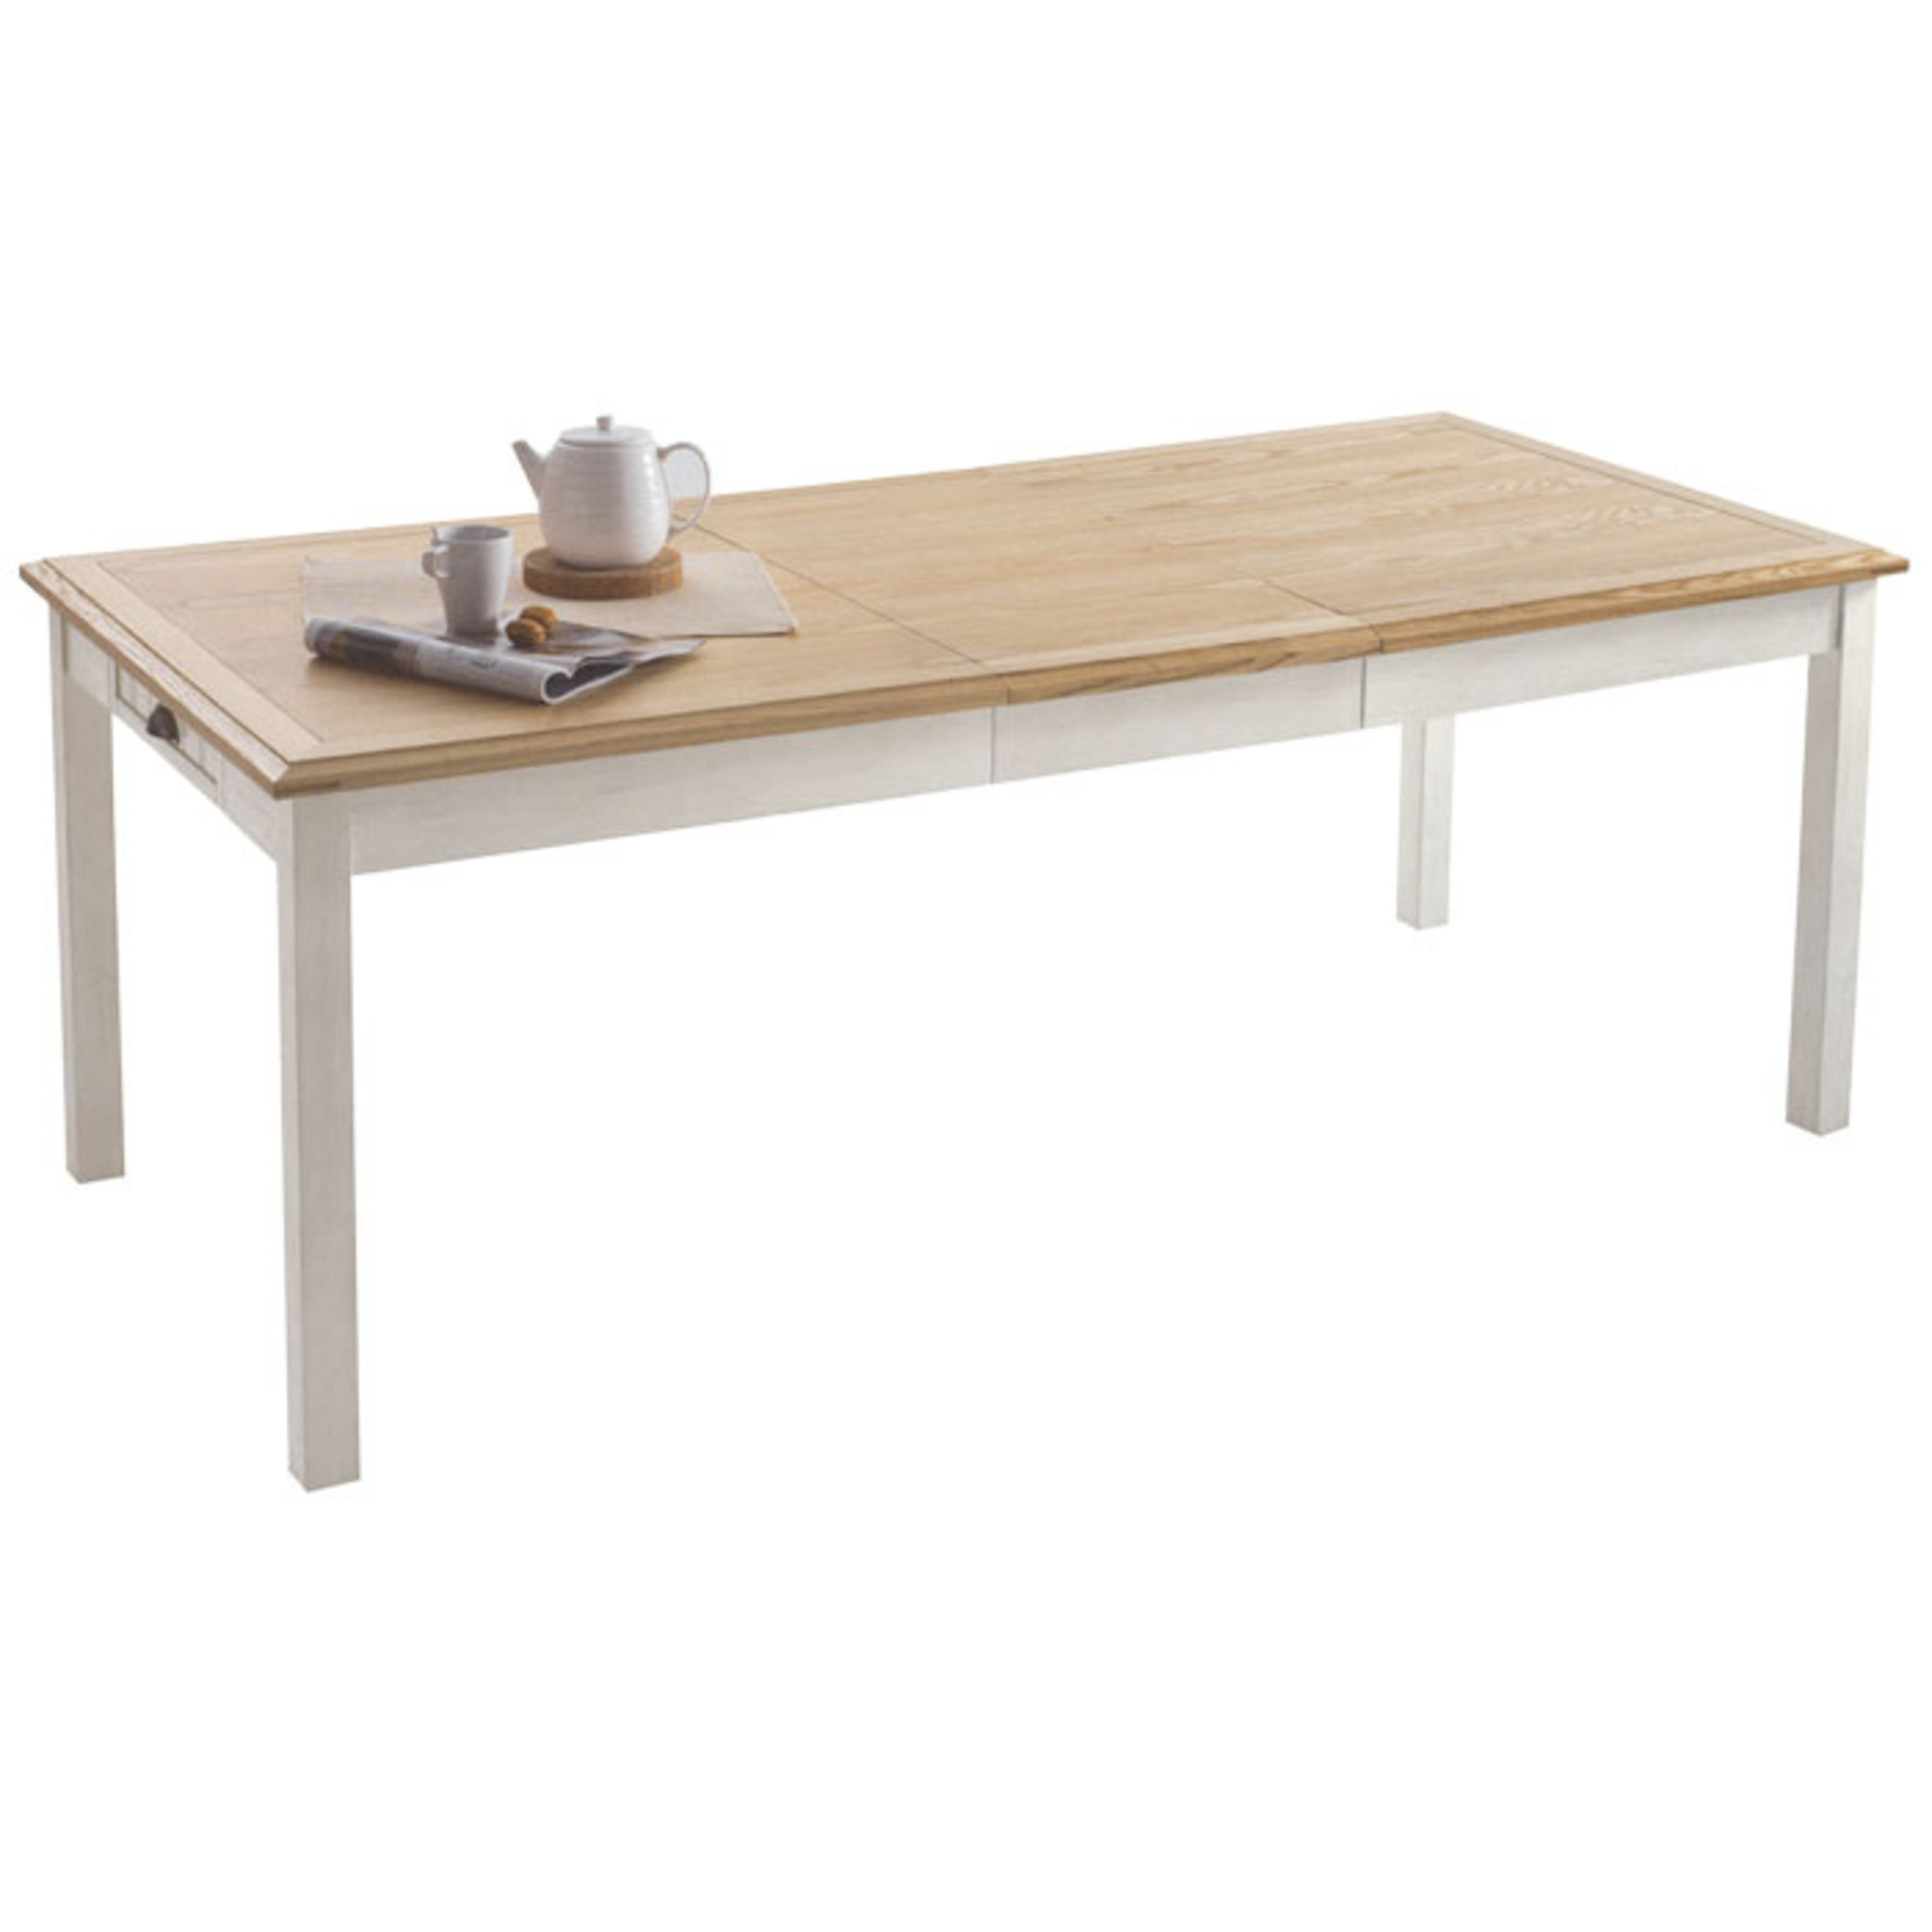 Table rectangulaire allonge berling blanc patin Table rectangulaire bois avec allonges